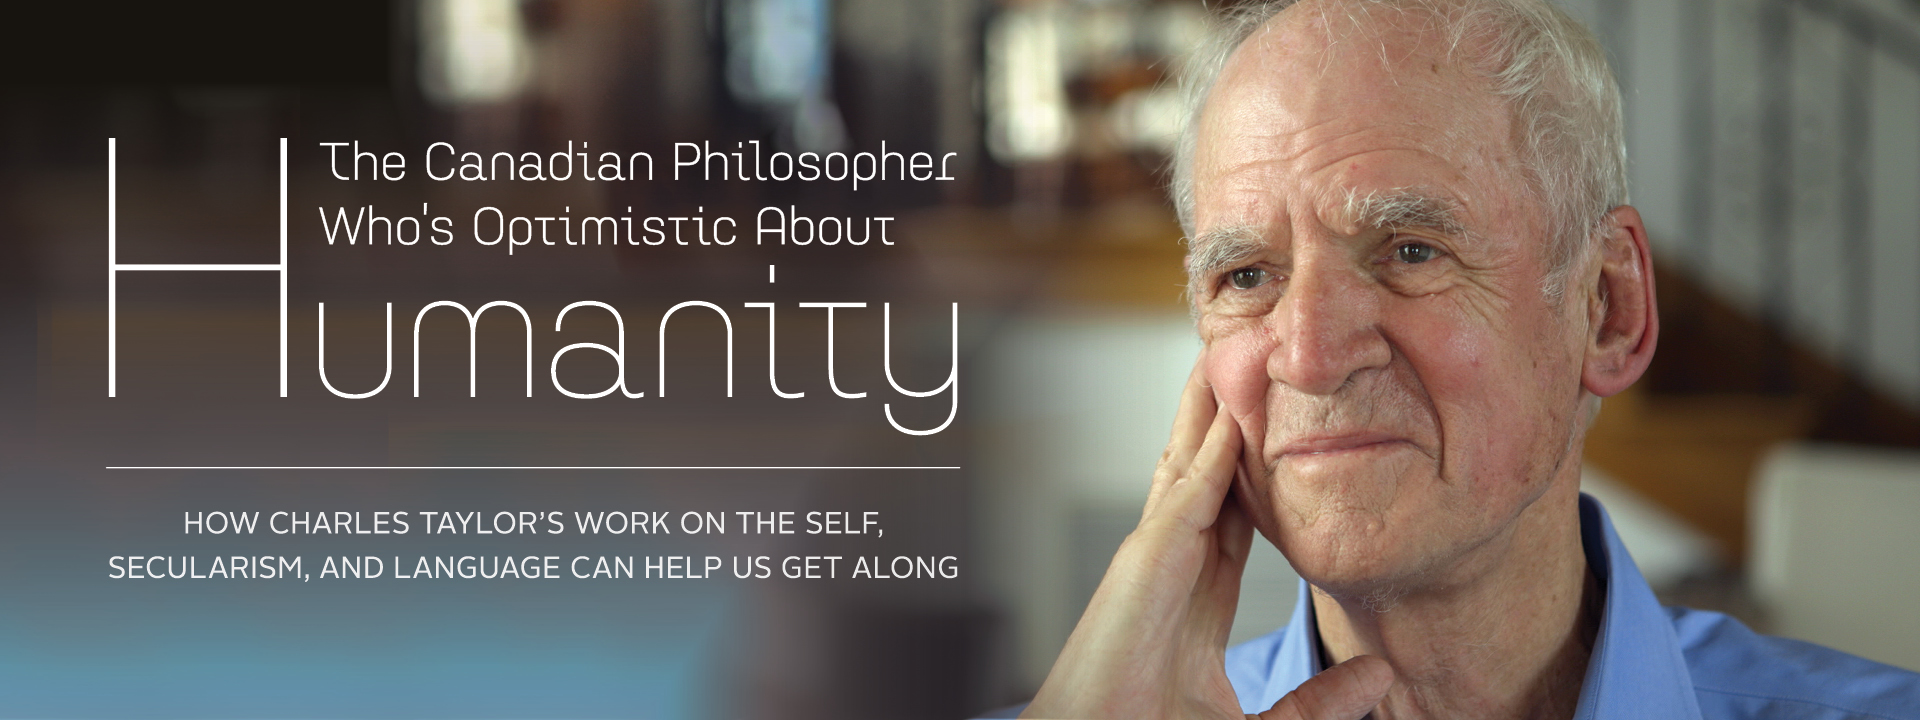 The Canadian Philosopher Who's Optimistic About Humanity